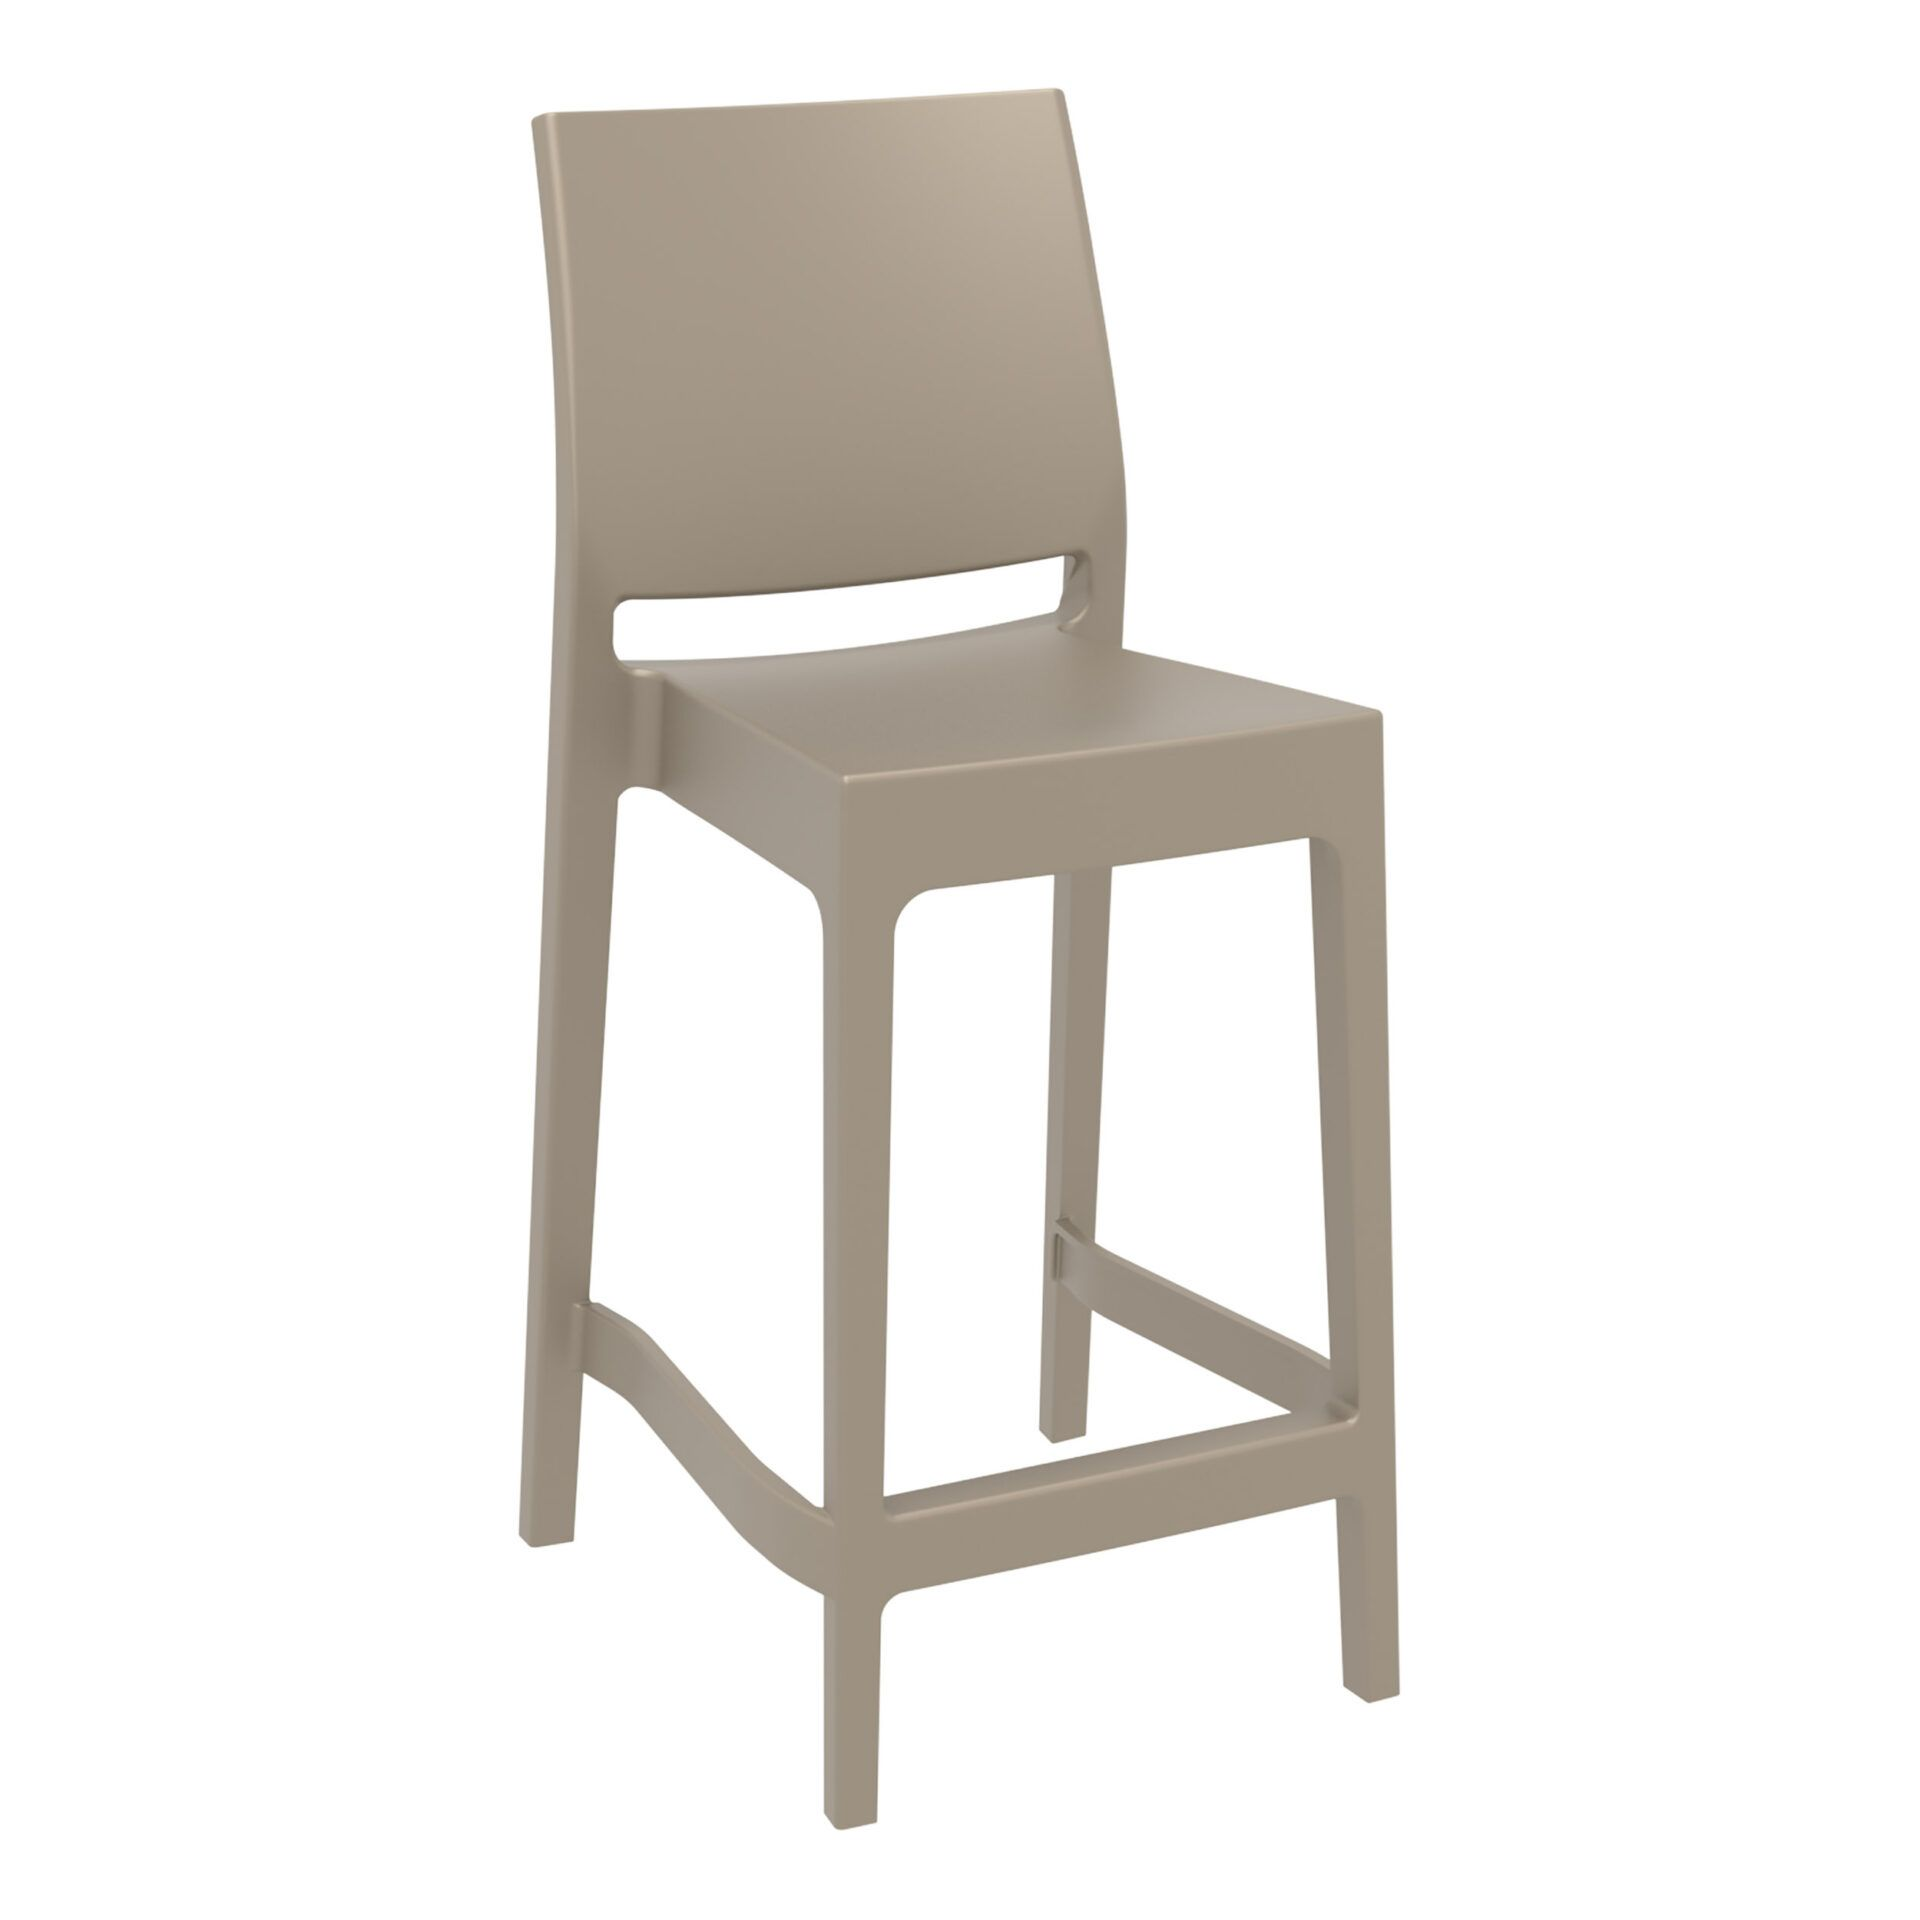 outdoor bar maya barstool 65 taupe front side